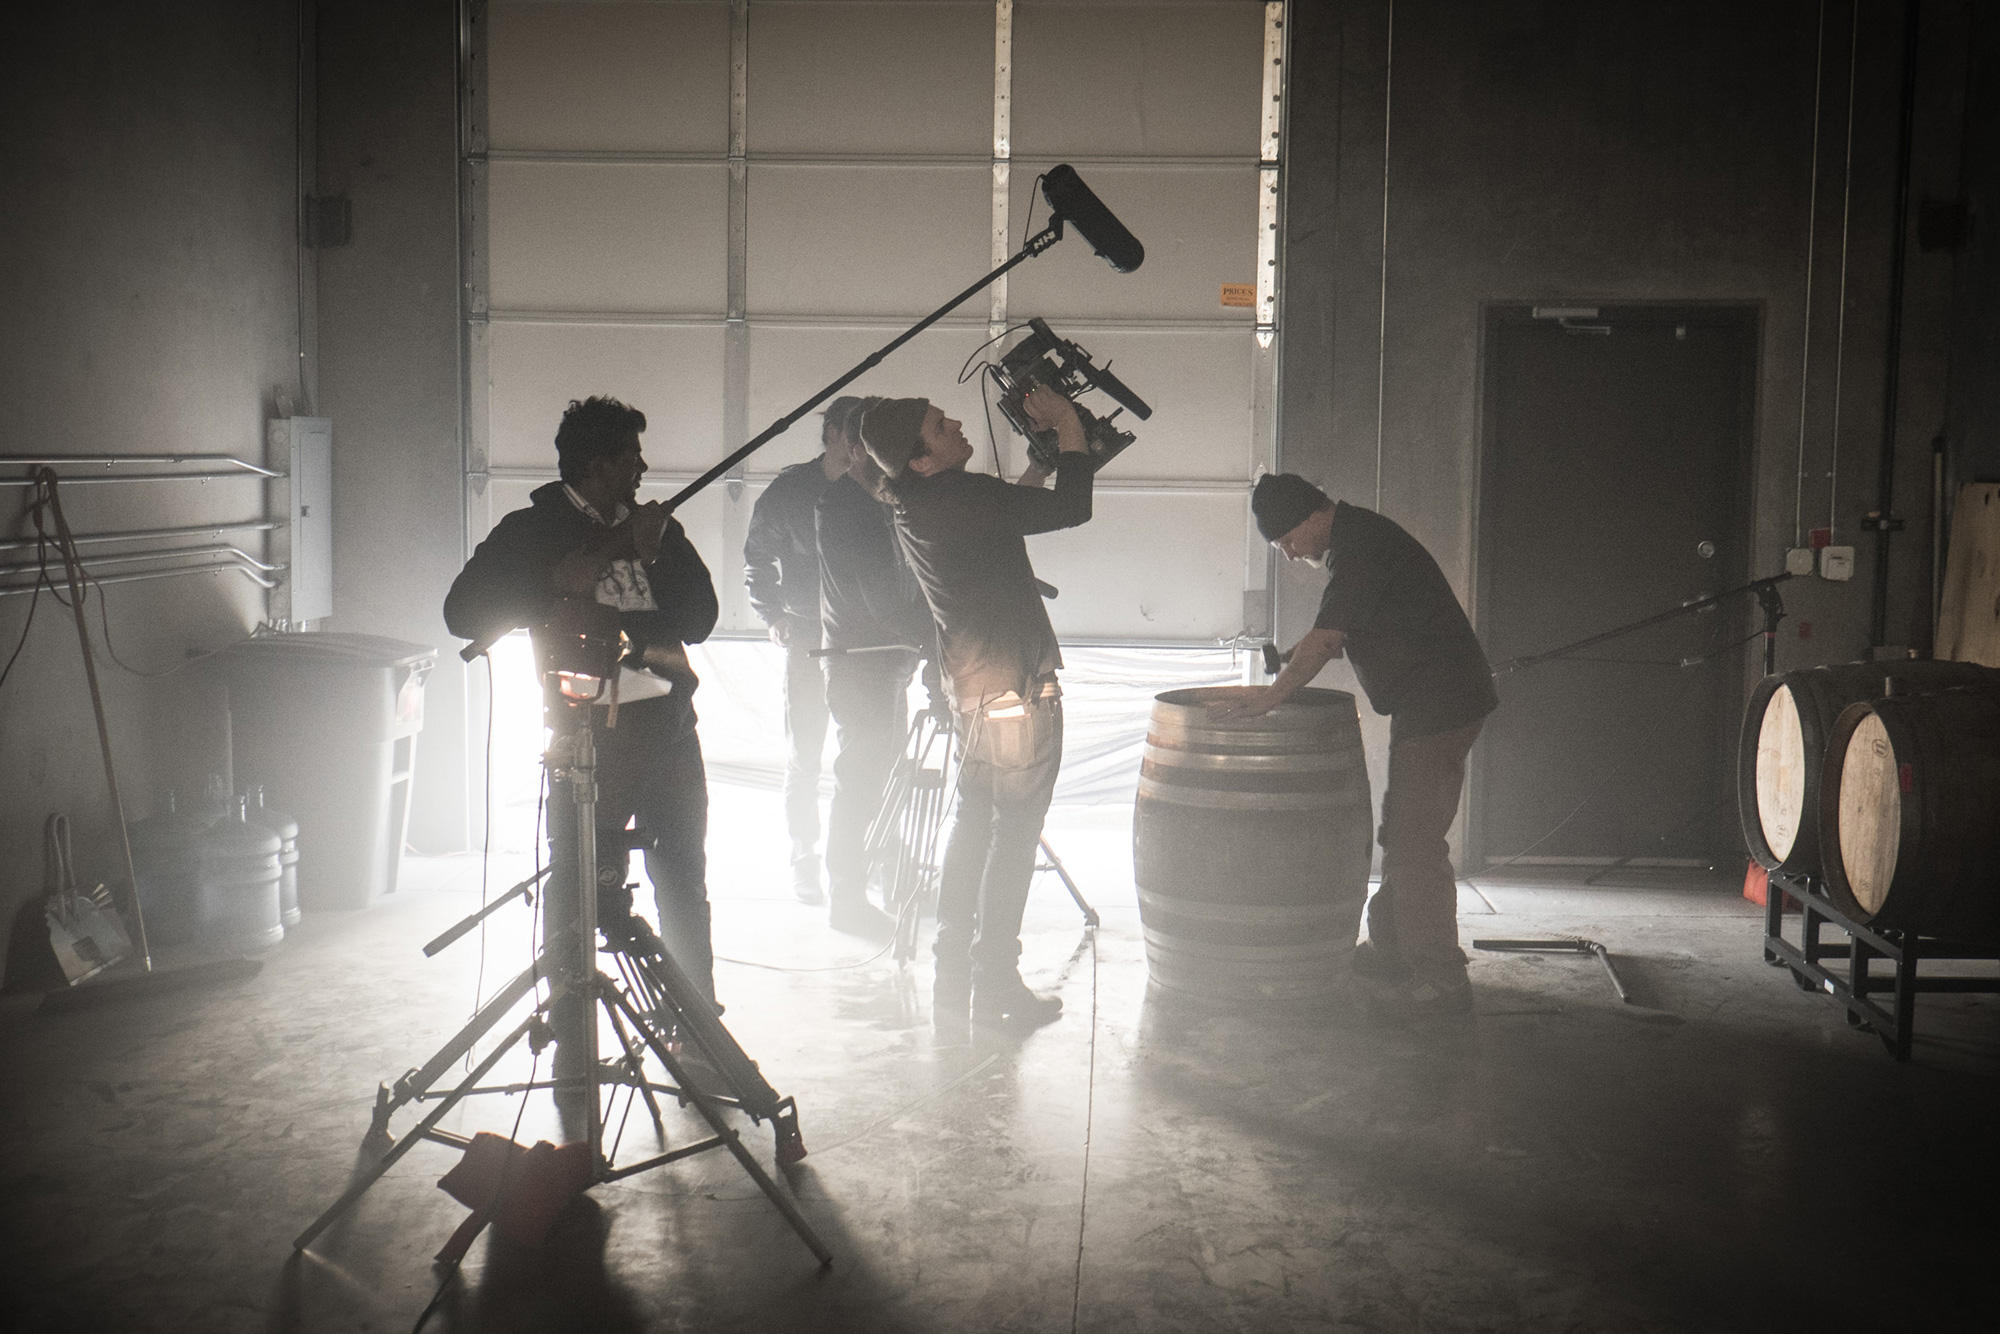 Beehive Distilling Small Batch Craft Gin Salt Lake City Utah 11